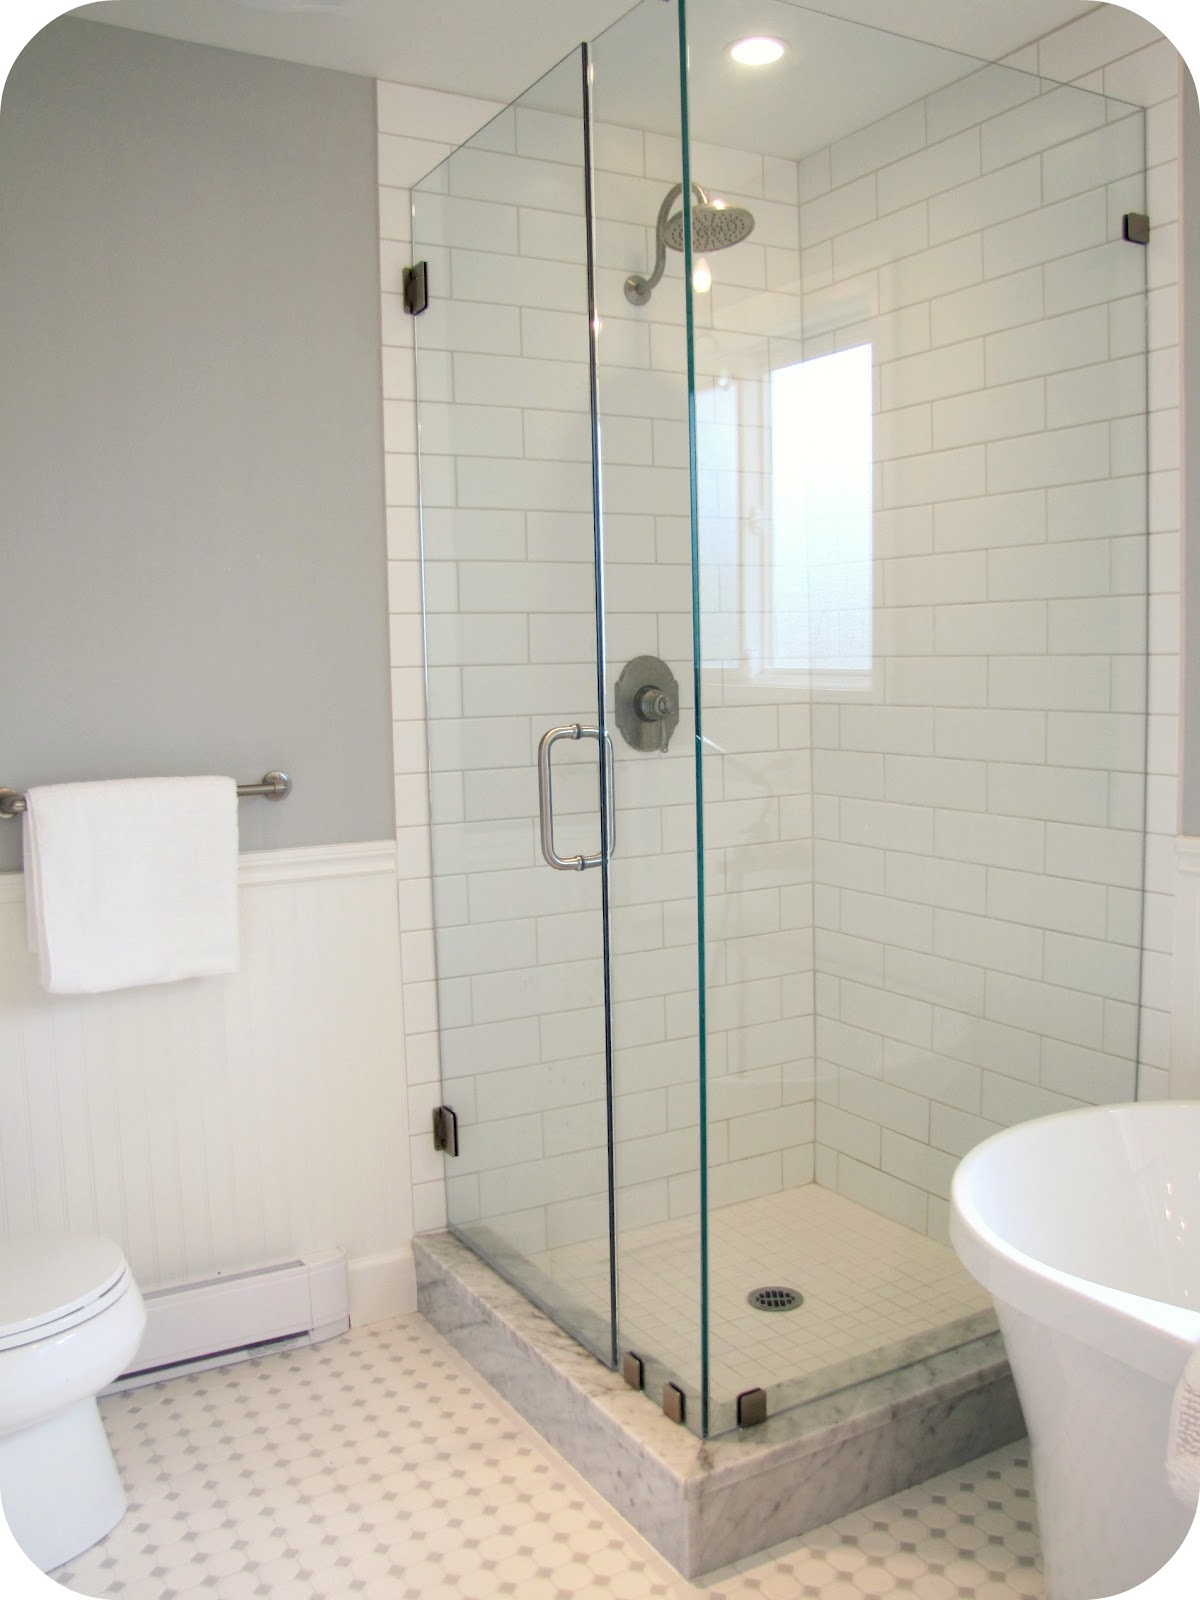 interior-bathroom-modern-clear-glass-cubicle-white-tile-shower-room-paneling-with-stainless-steel-wall-mount-waterflall-shower-designs-with-glass-tile